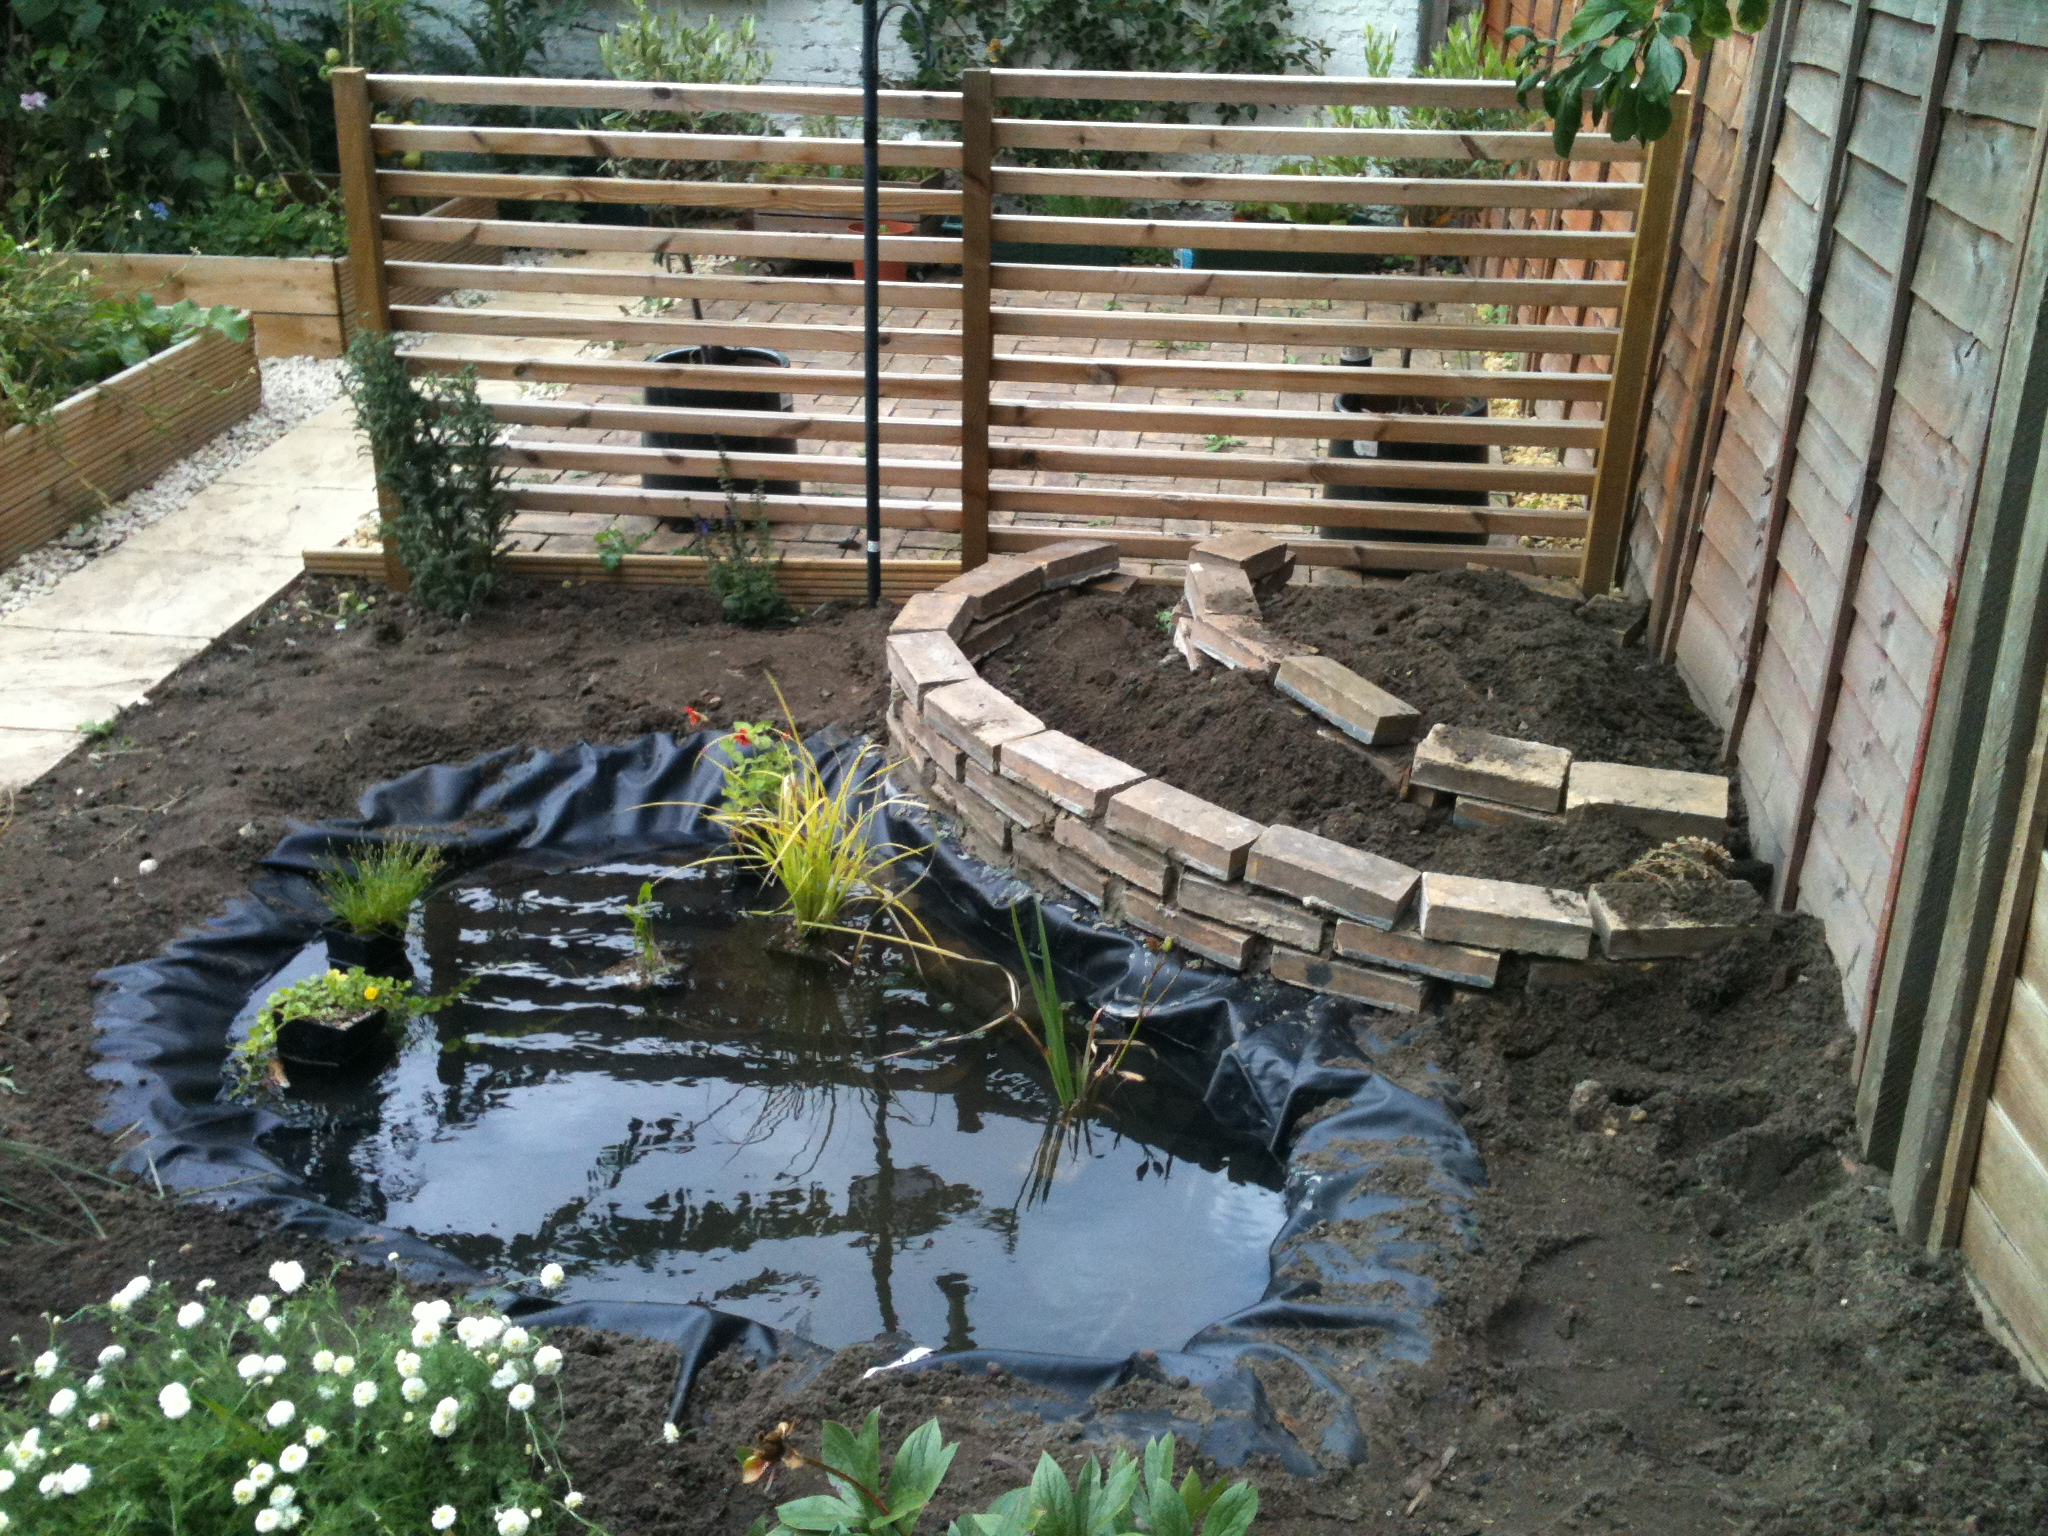 Create your own garden pond nature conservation lewisham for Making a garden pond